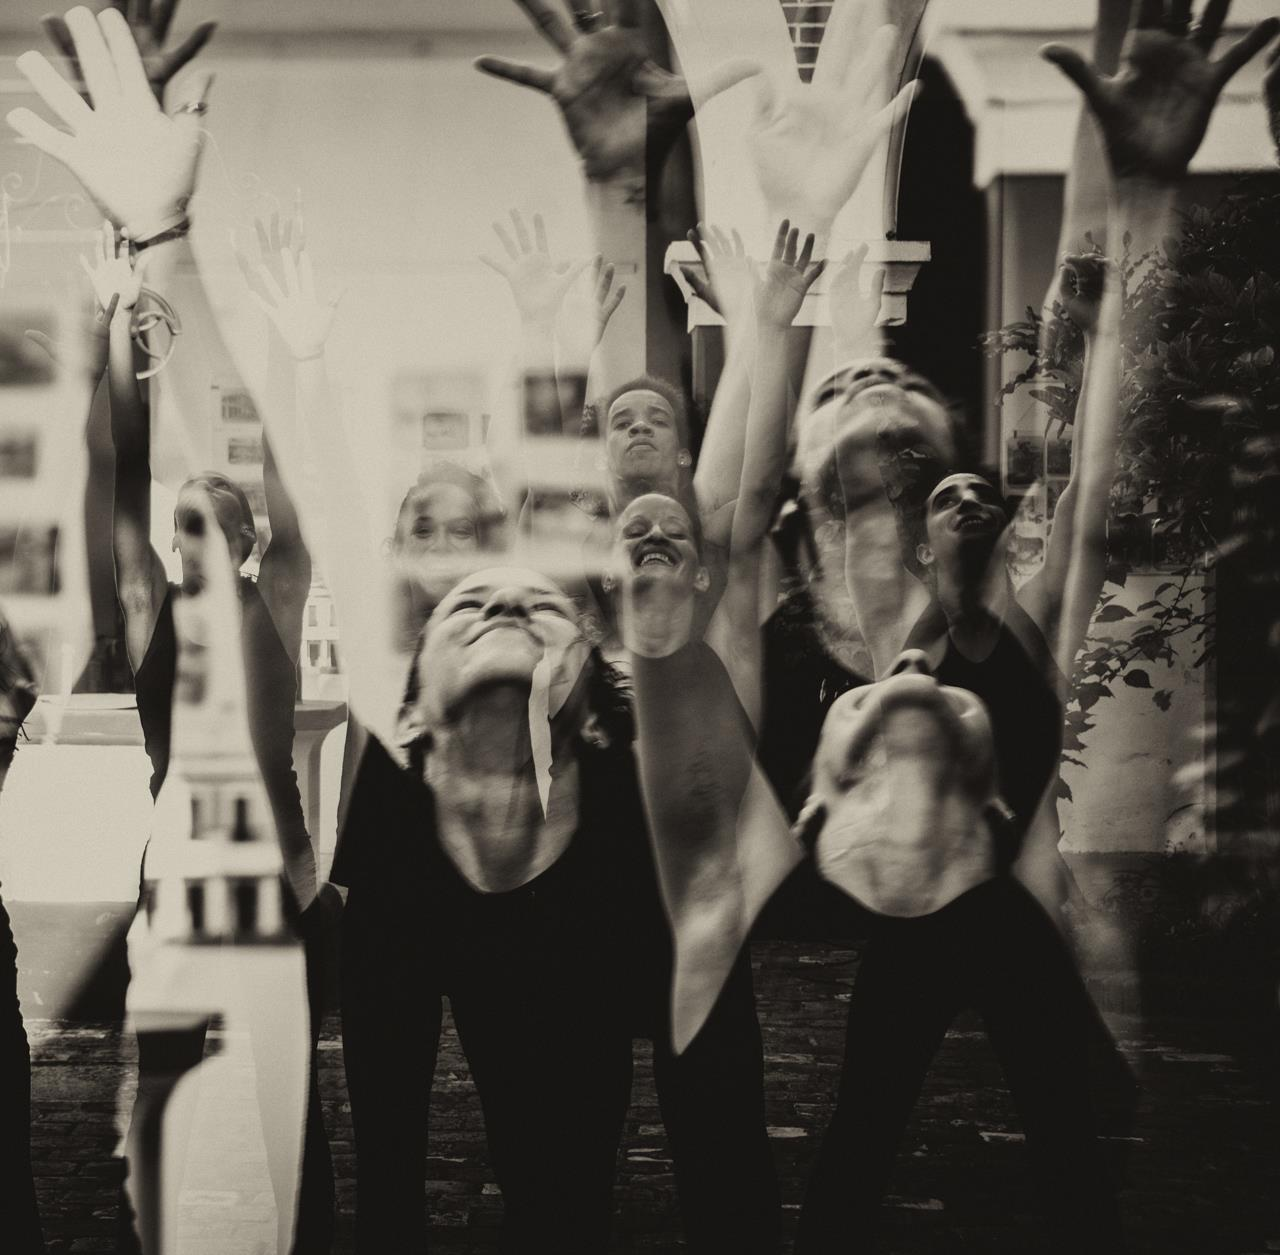 Celebrate: Compania Codanza 3, © Carl Moore, Santa Fe, New Mexico, Santa Fe Photographic — Celebrate